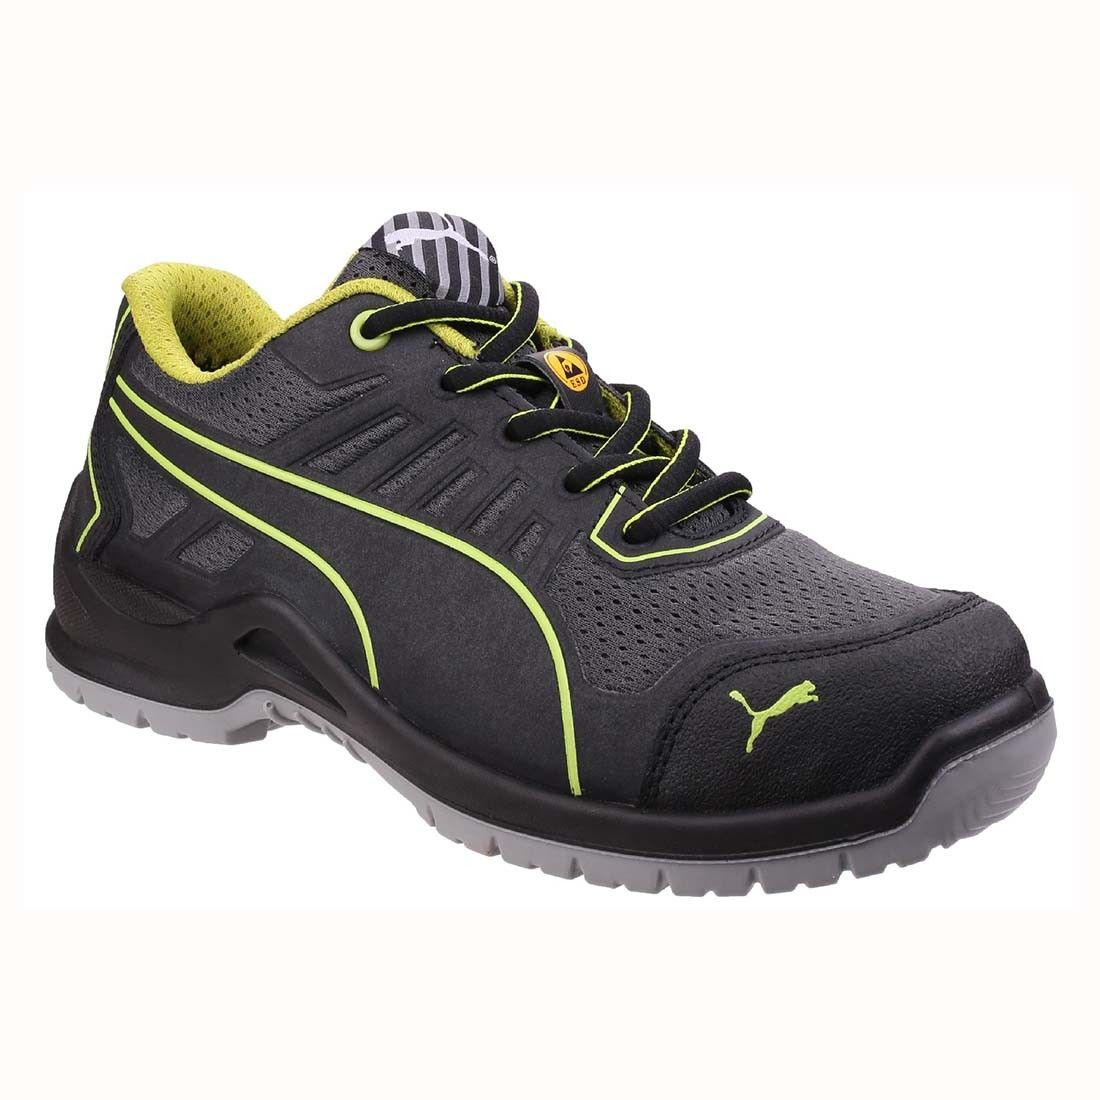 65617d98657 Puma Ladies Fuse TC Low Black and Green S1P ESD Work Safety Trainers ...